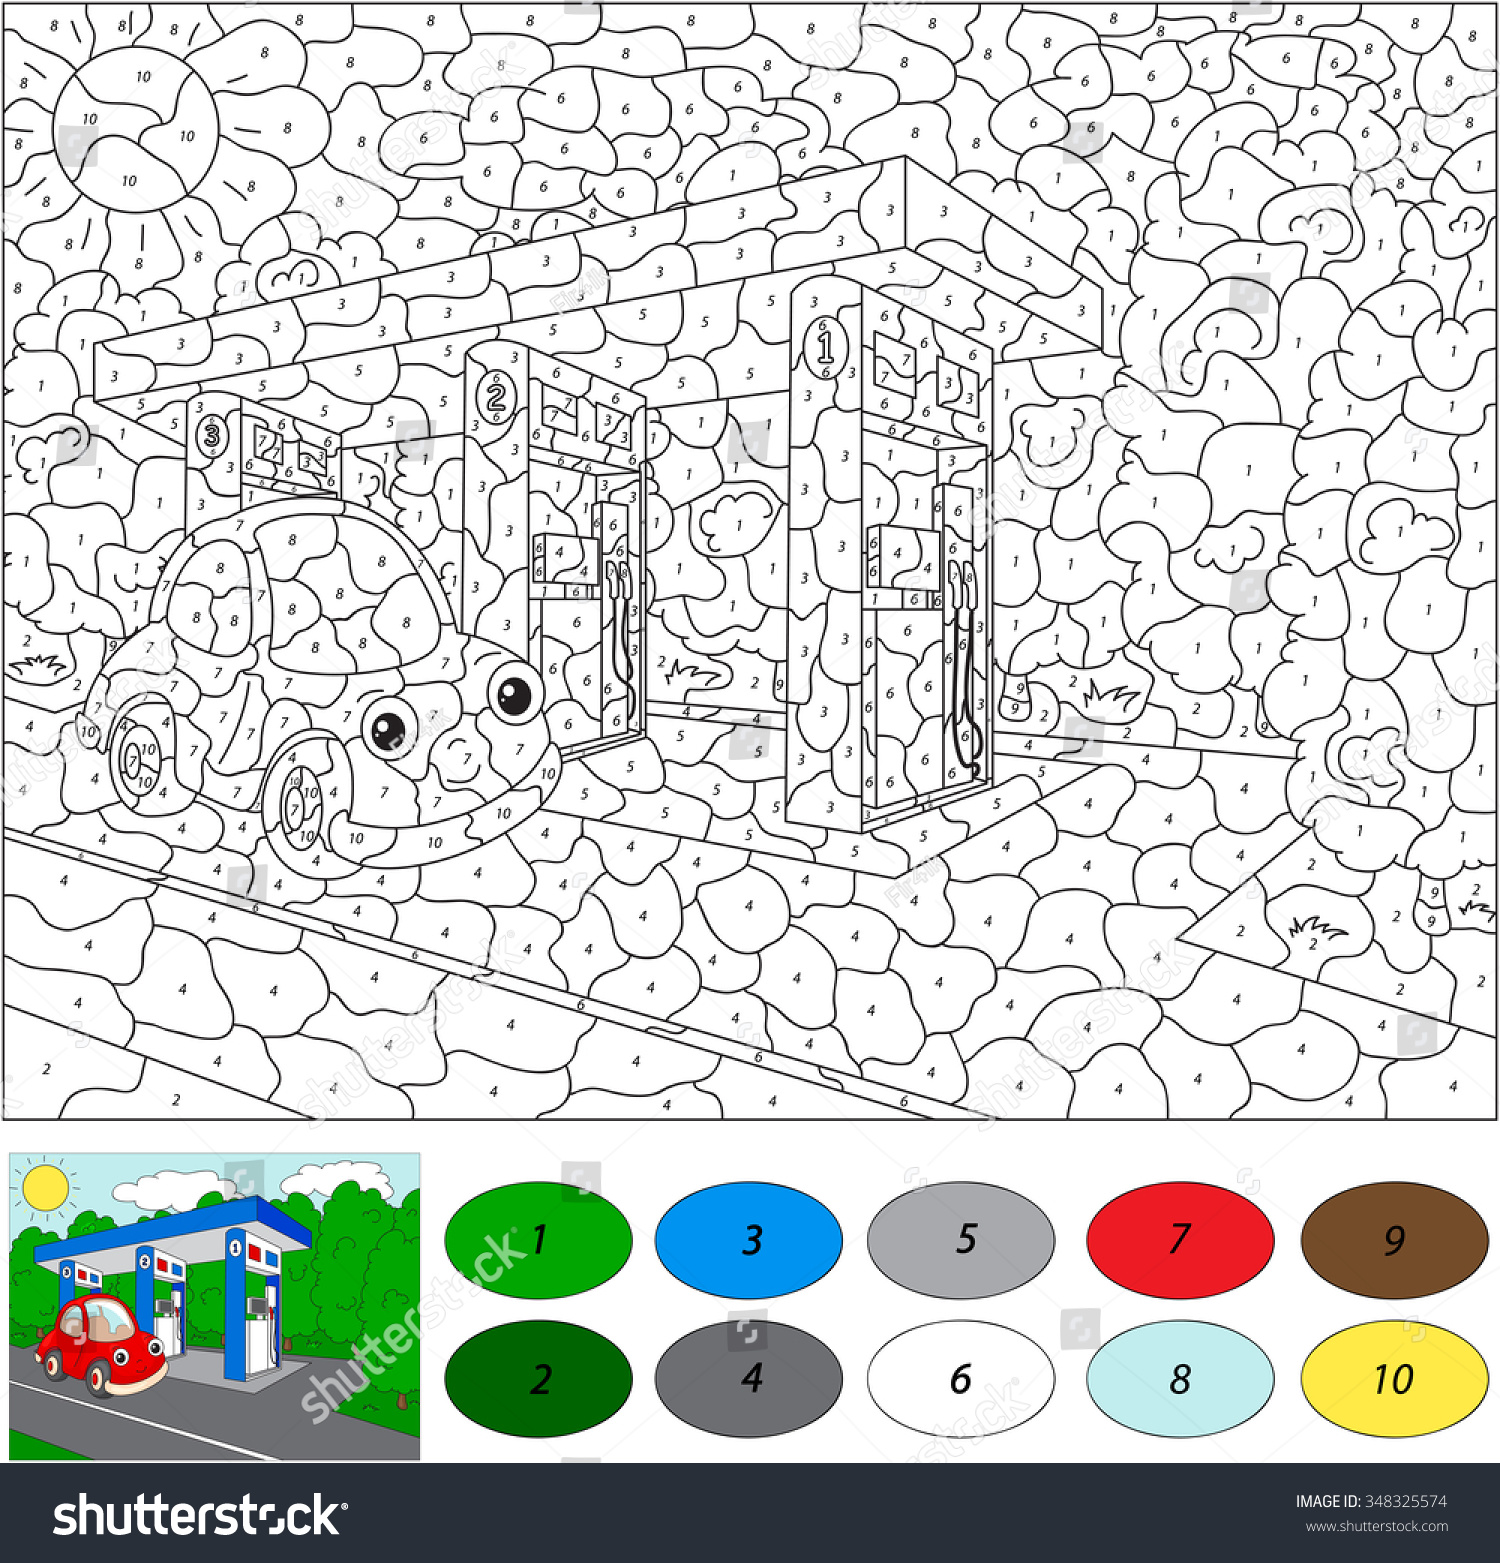 hight resolution of color by number educational game for kids car gas or petrol station illustration for